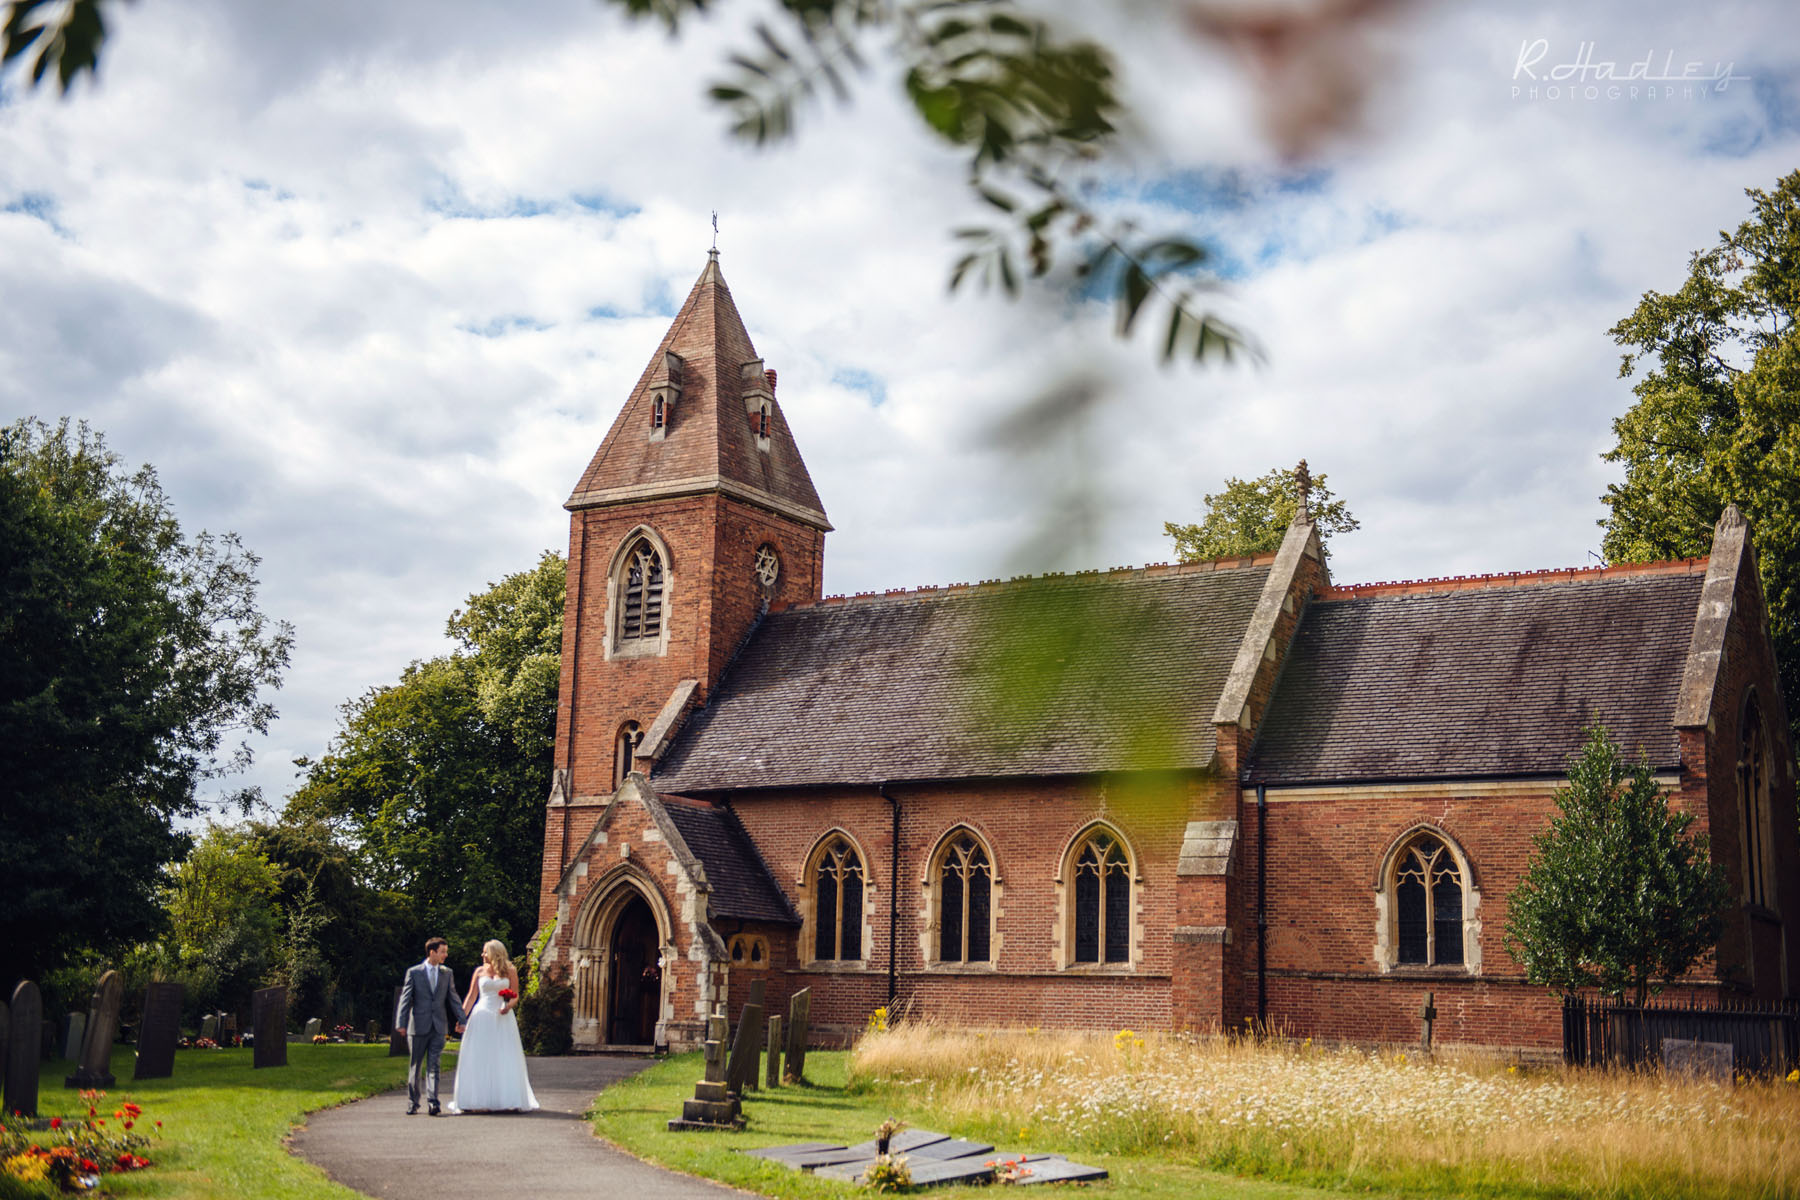 Wedding couple at St. James Church in Weddington, Warwickshire